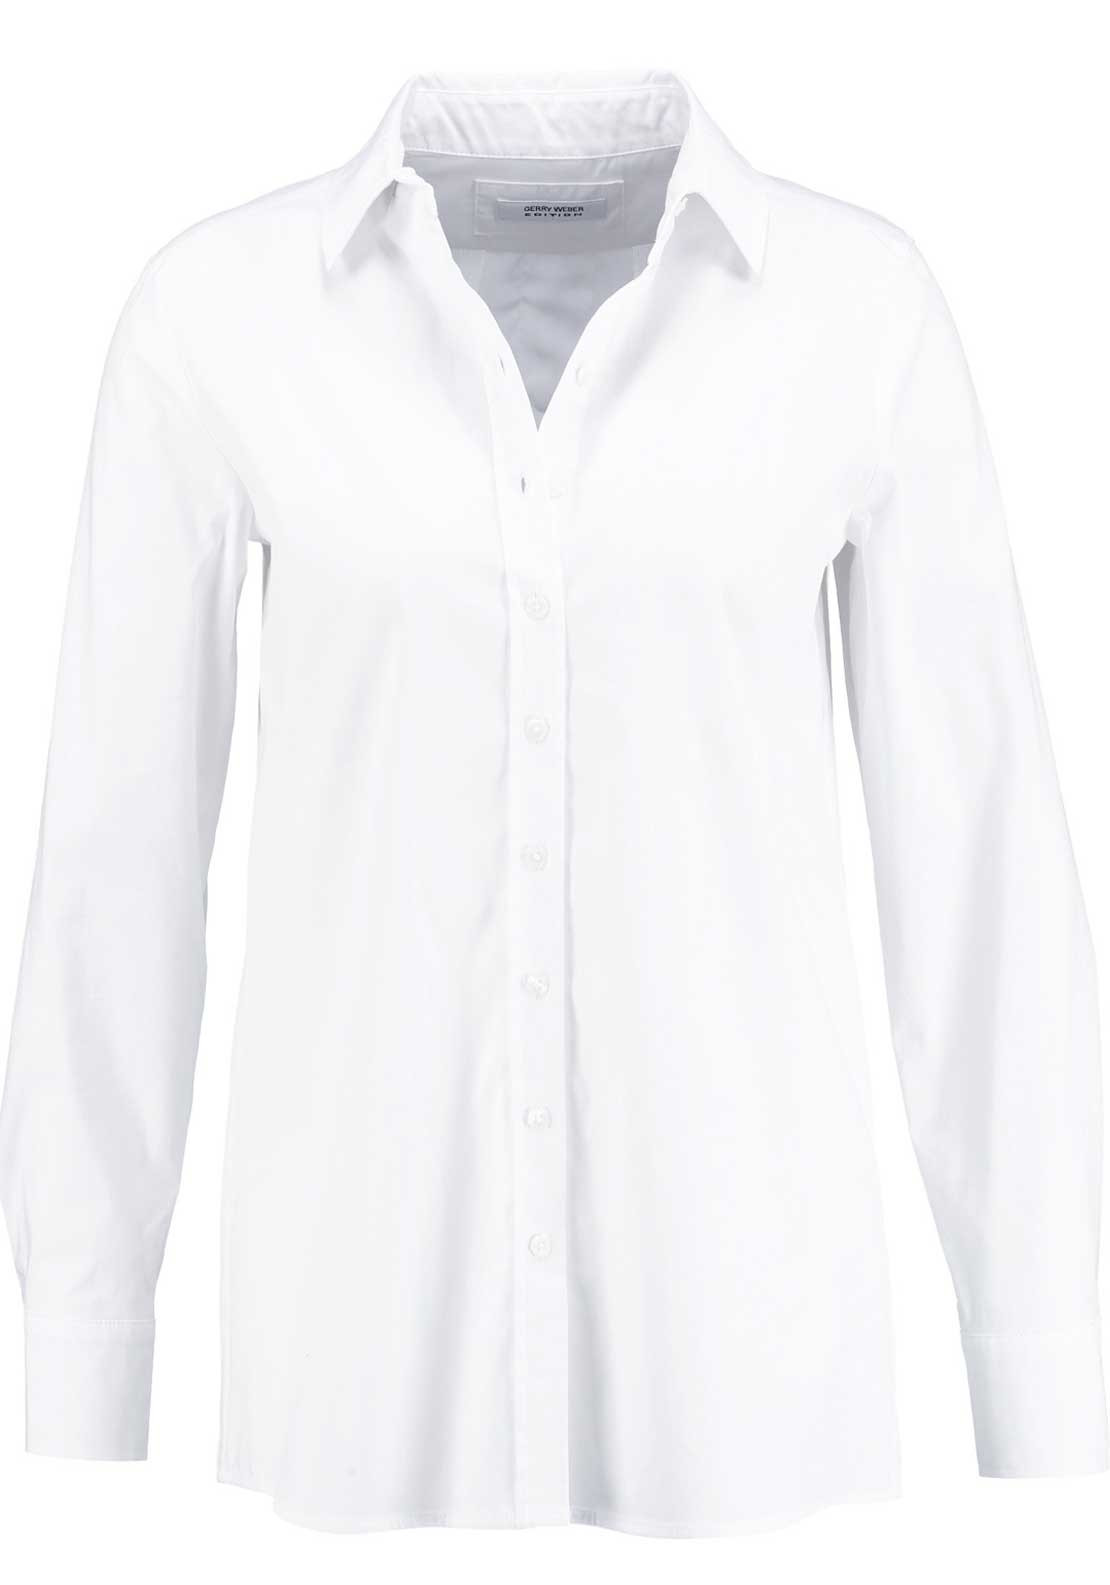 Gerry Weber Basic Fit Long Sleeve Blouse, White